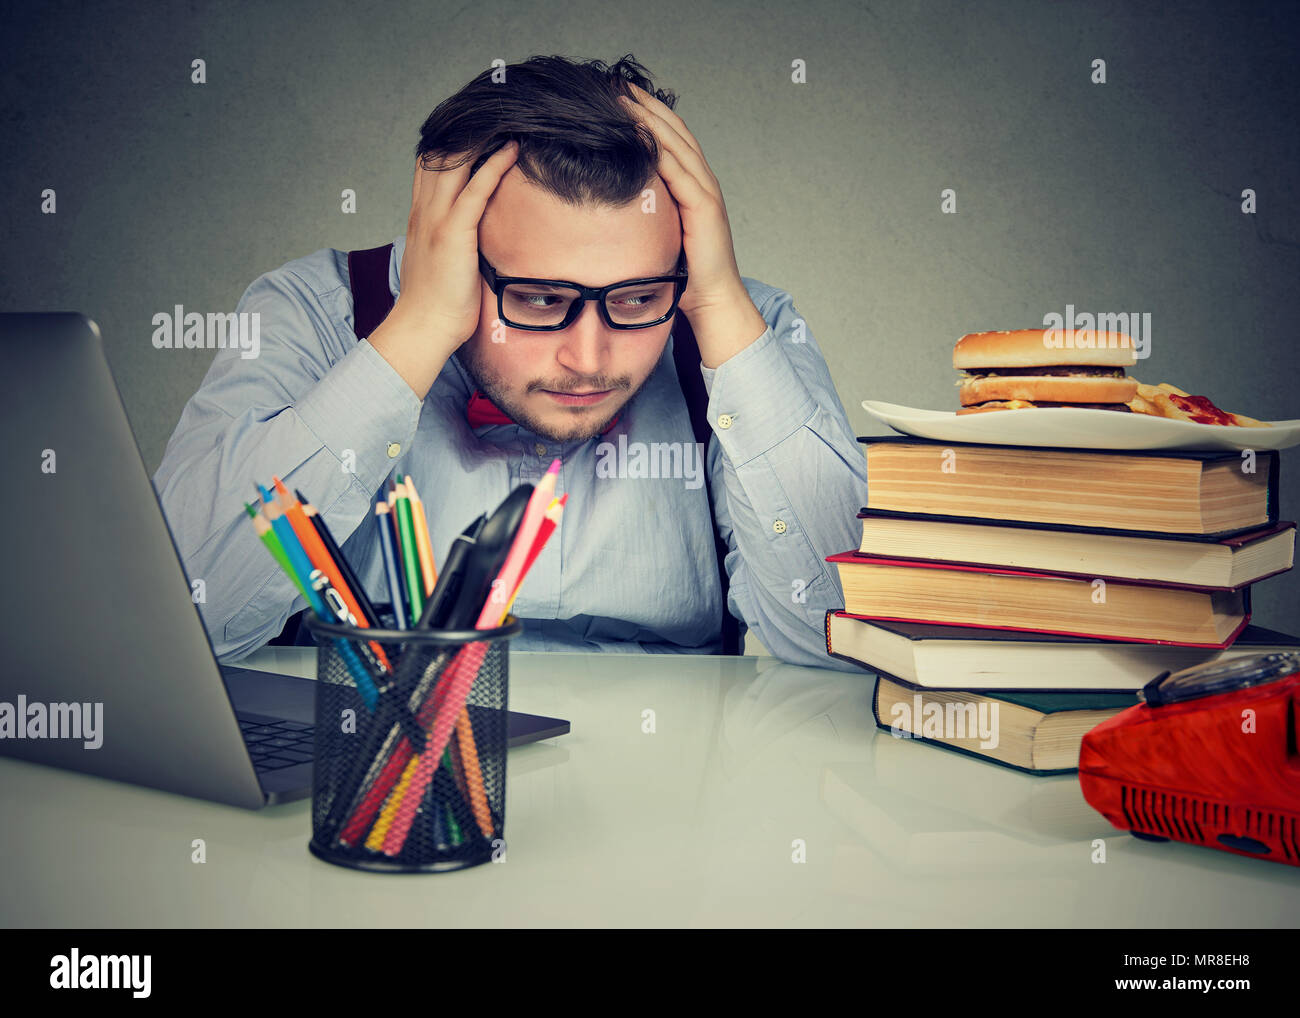 Overworked stressed chubby man sitting at desk and craving a burger - Stock Image